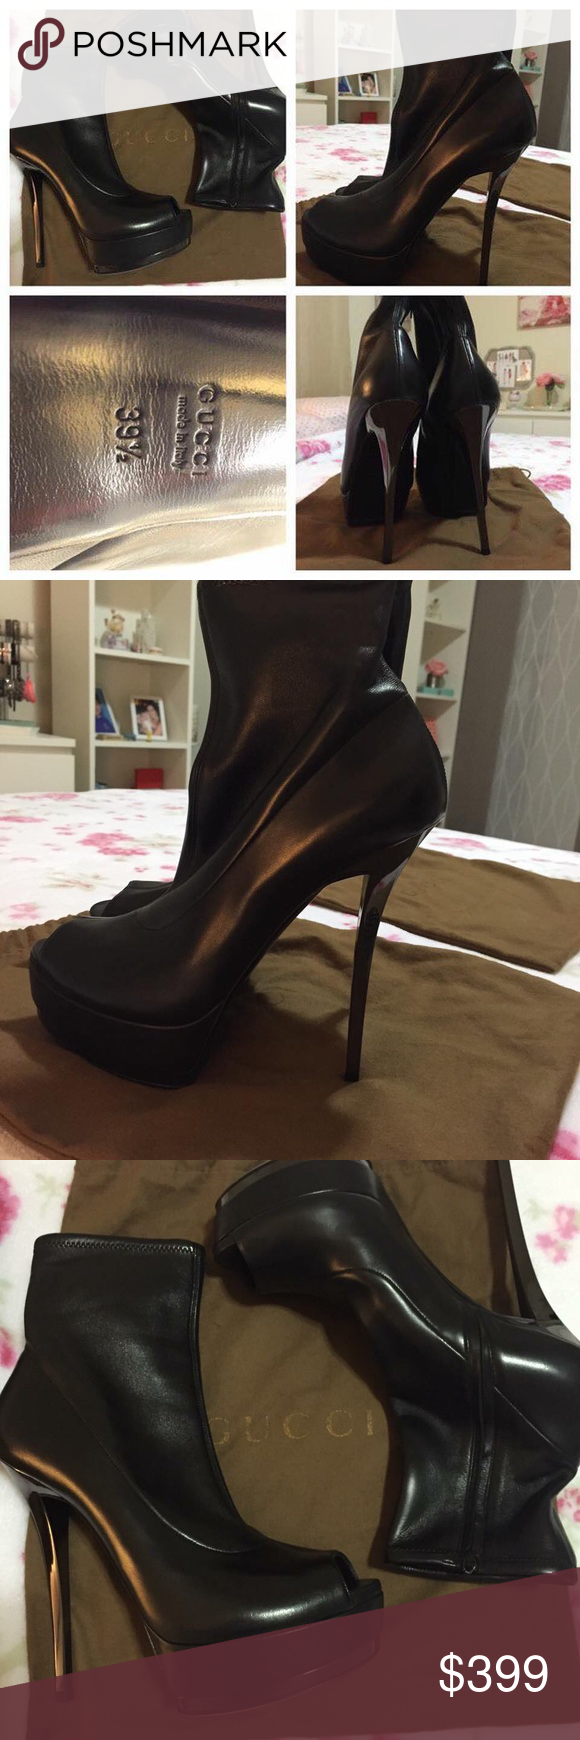 Gucci Kills Platform Booties Brand new // never used // Gucci Kills Platform open toe Booties // Italian size 39.5 (9US)  // with original box and dust bags. //**Ankle opening is only about 9 inches/ material has some stretch to it and can be worn partially zipped if you have a thicker leg but please consider this fact before purchasing! :) Gucci Shoes Ankle Boots & Booties